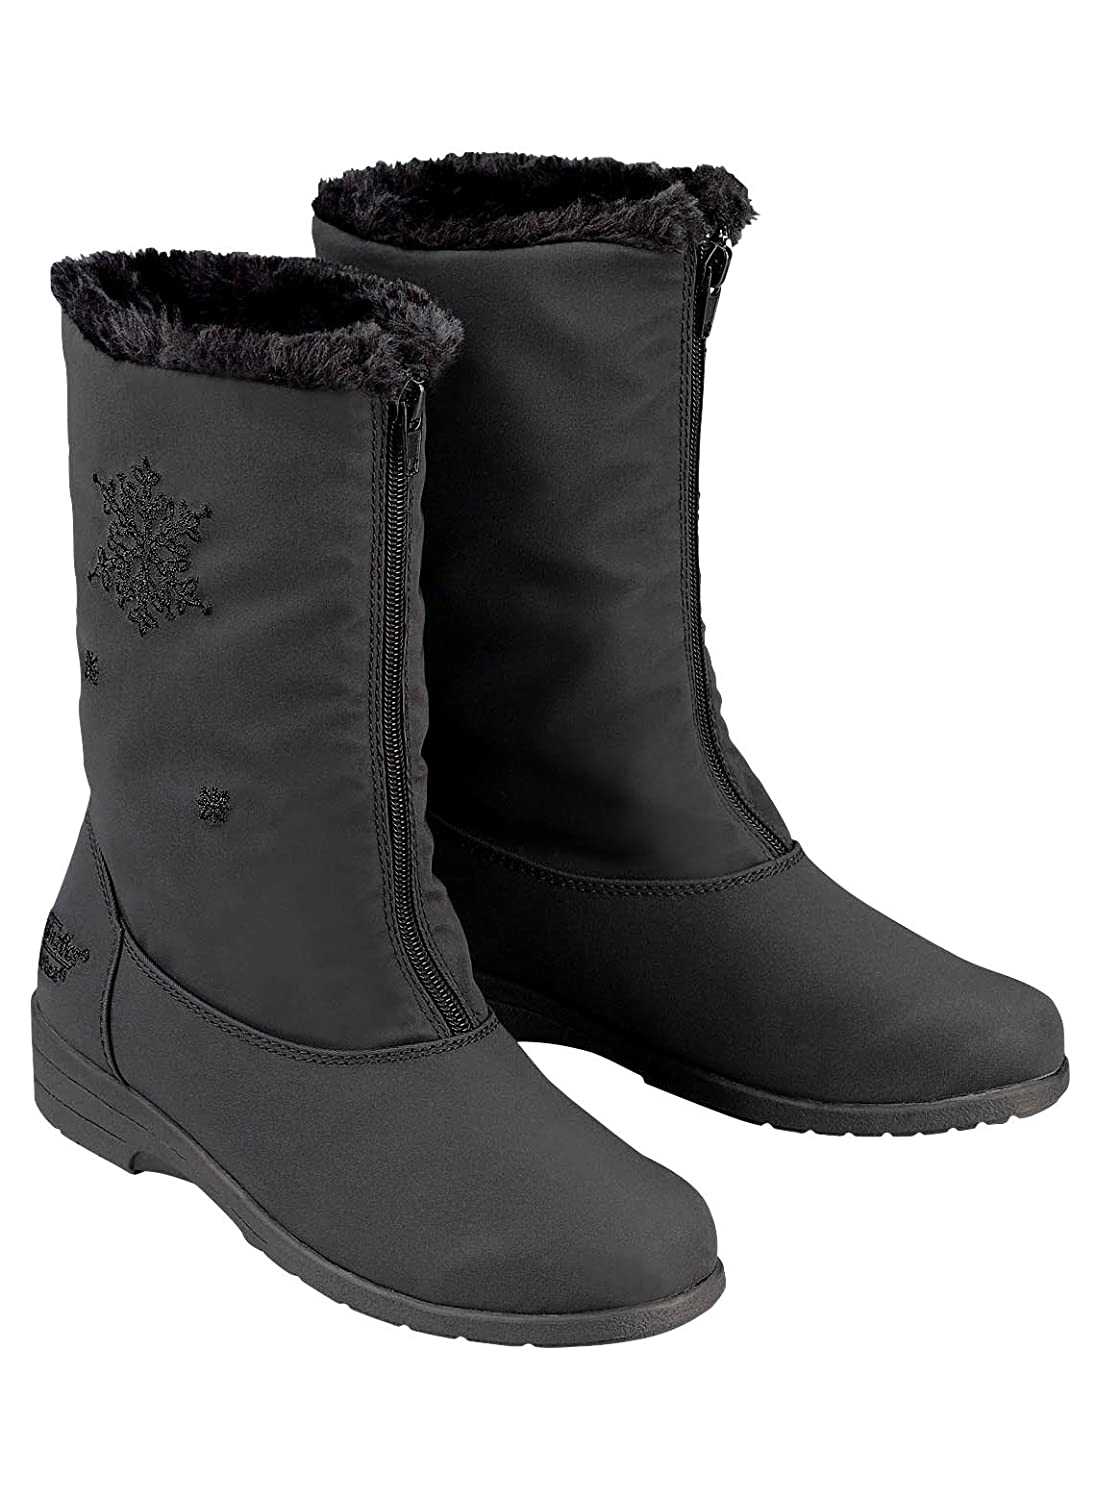 womens totes boots boots price reviews 2017